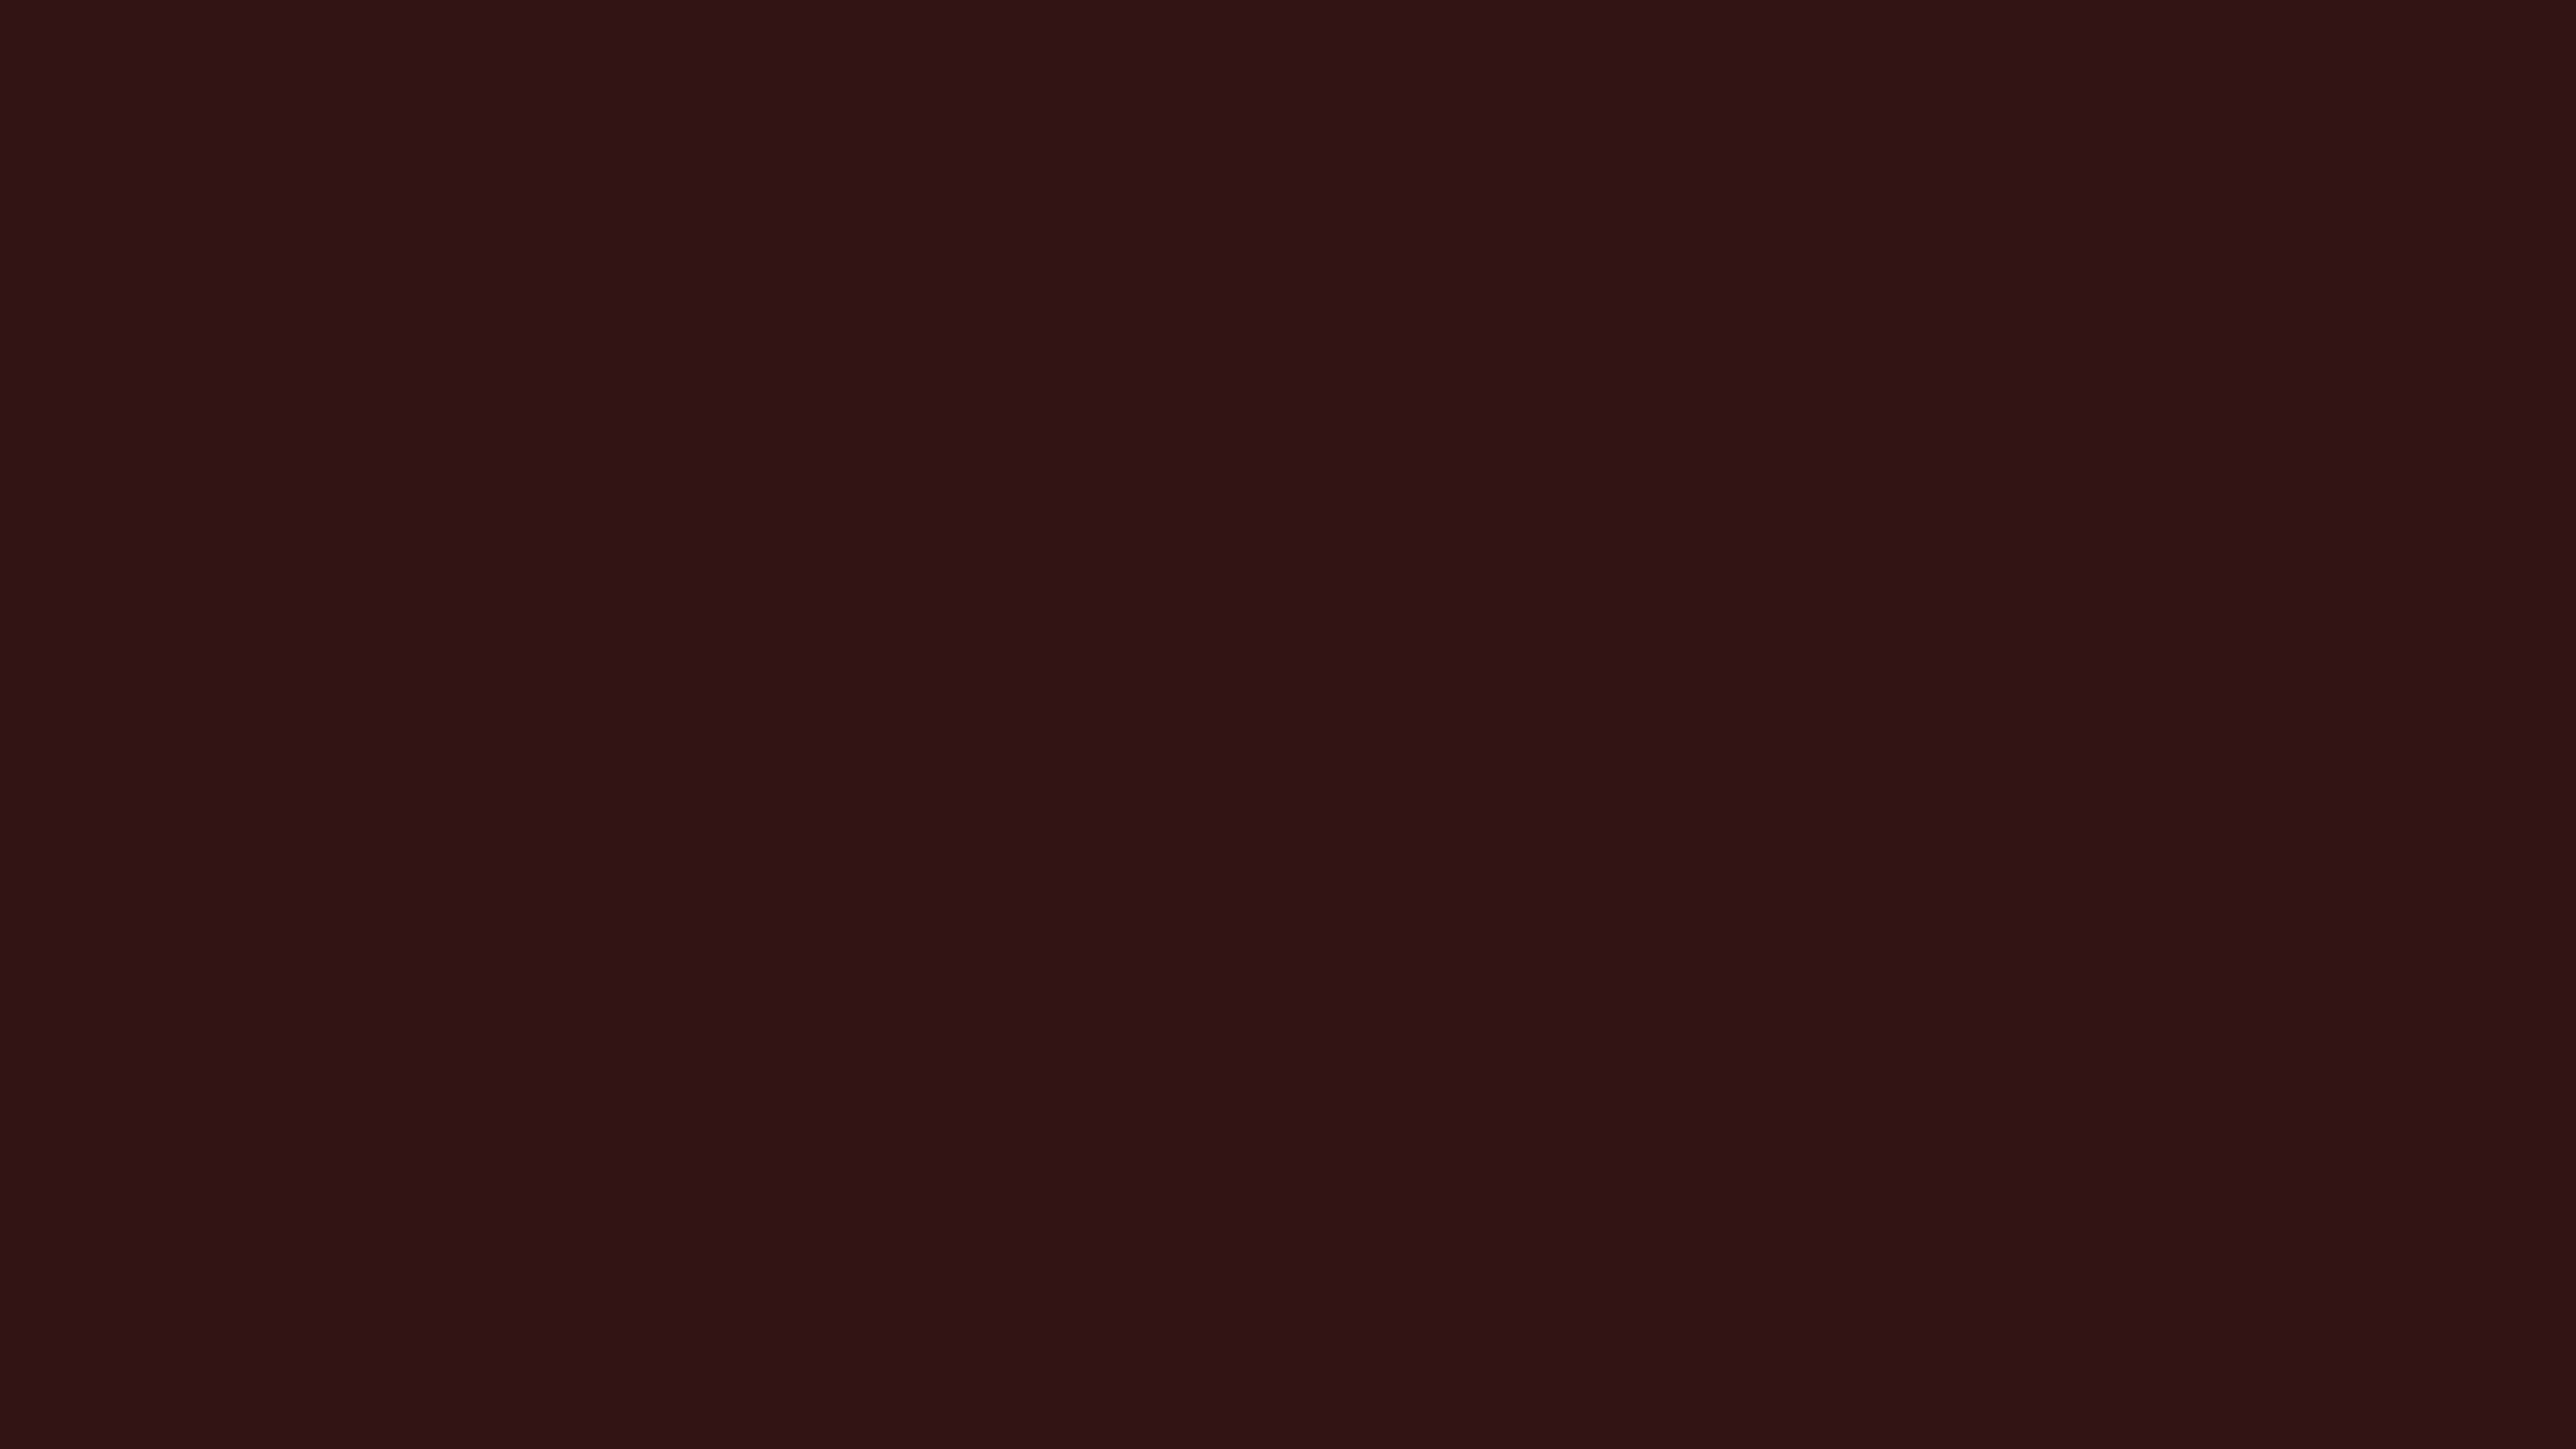 7680x4320 Seal Brown Solid Color Background